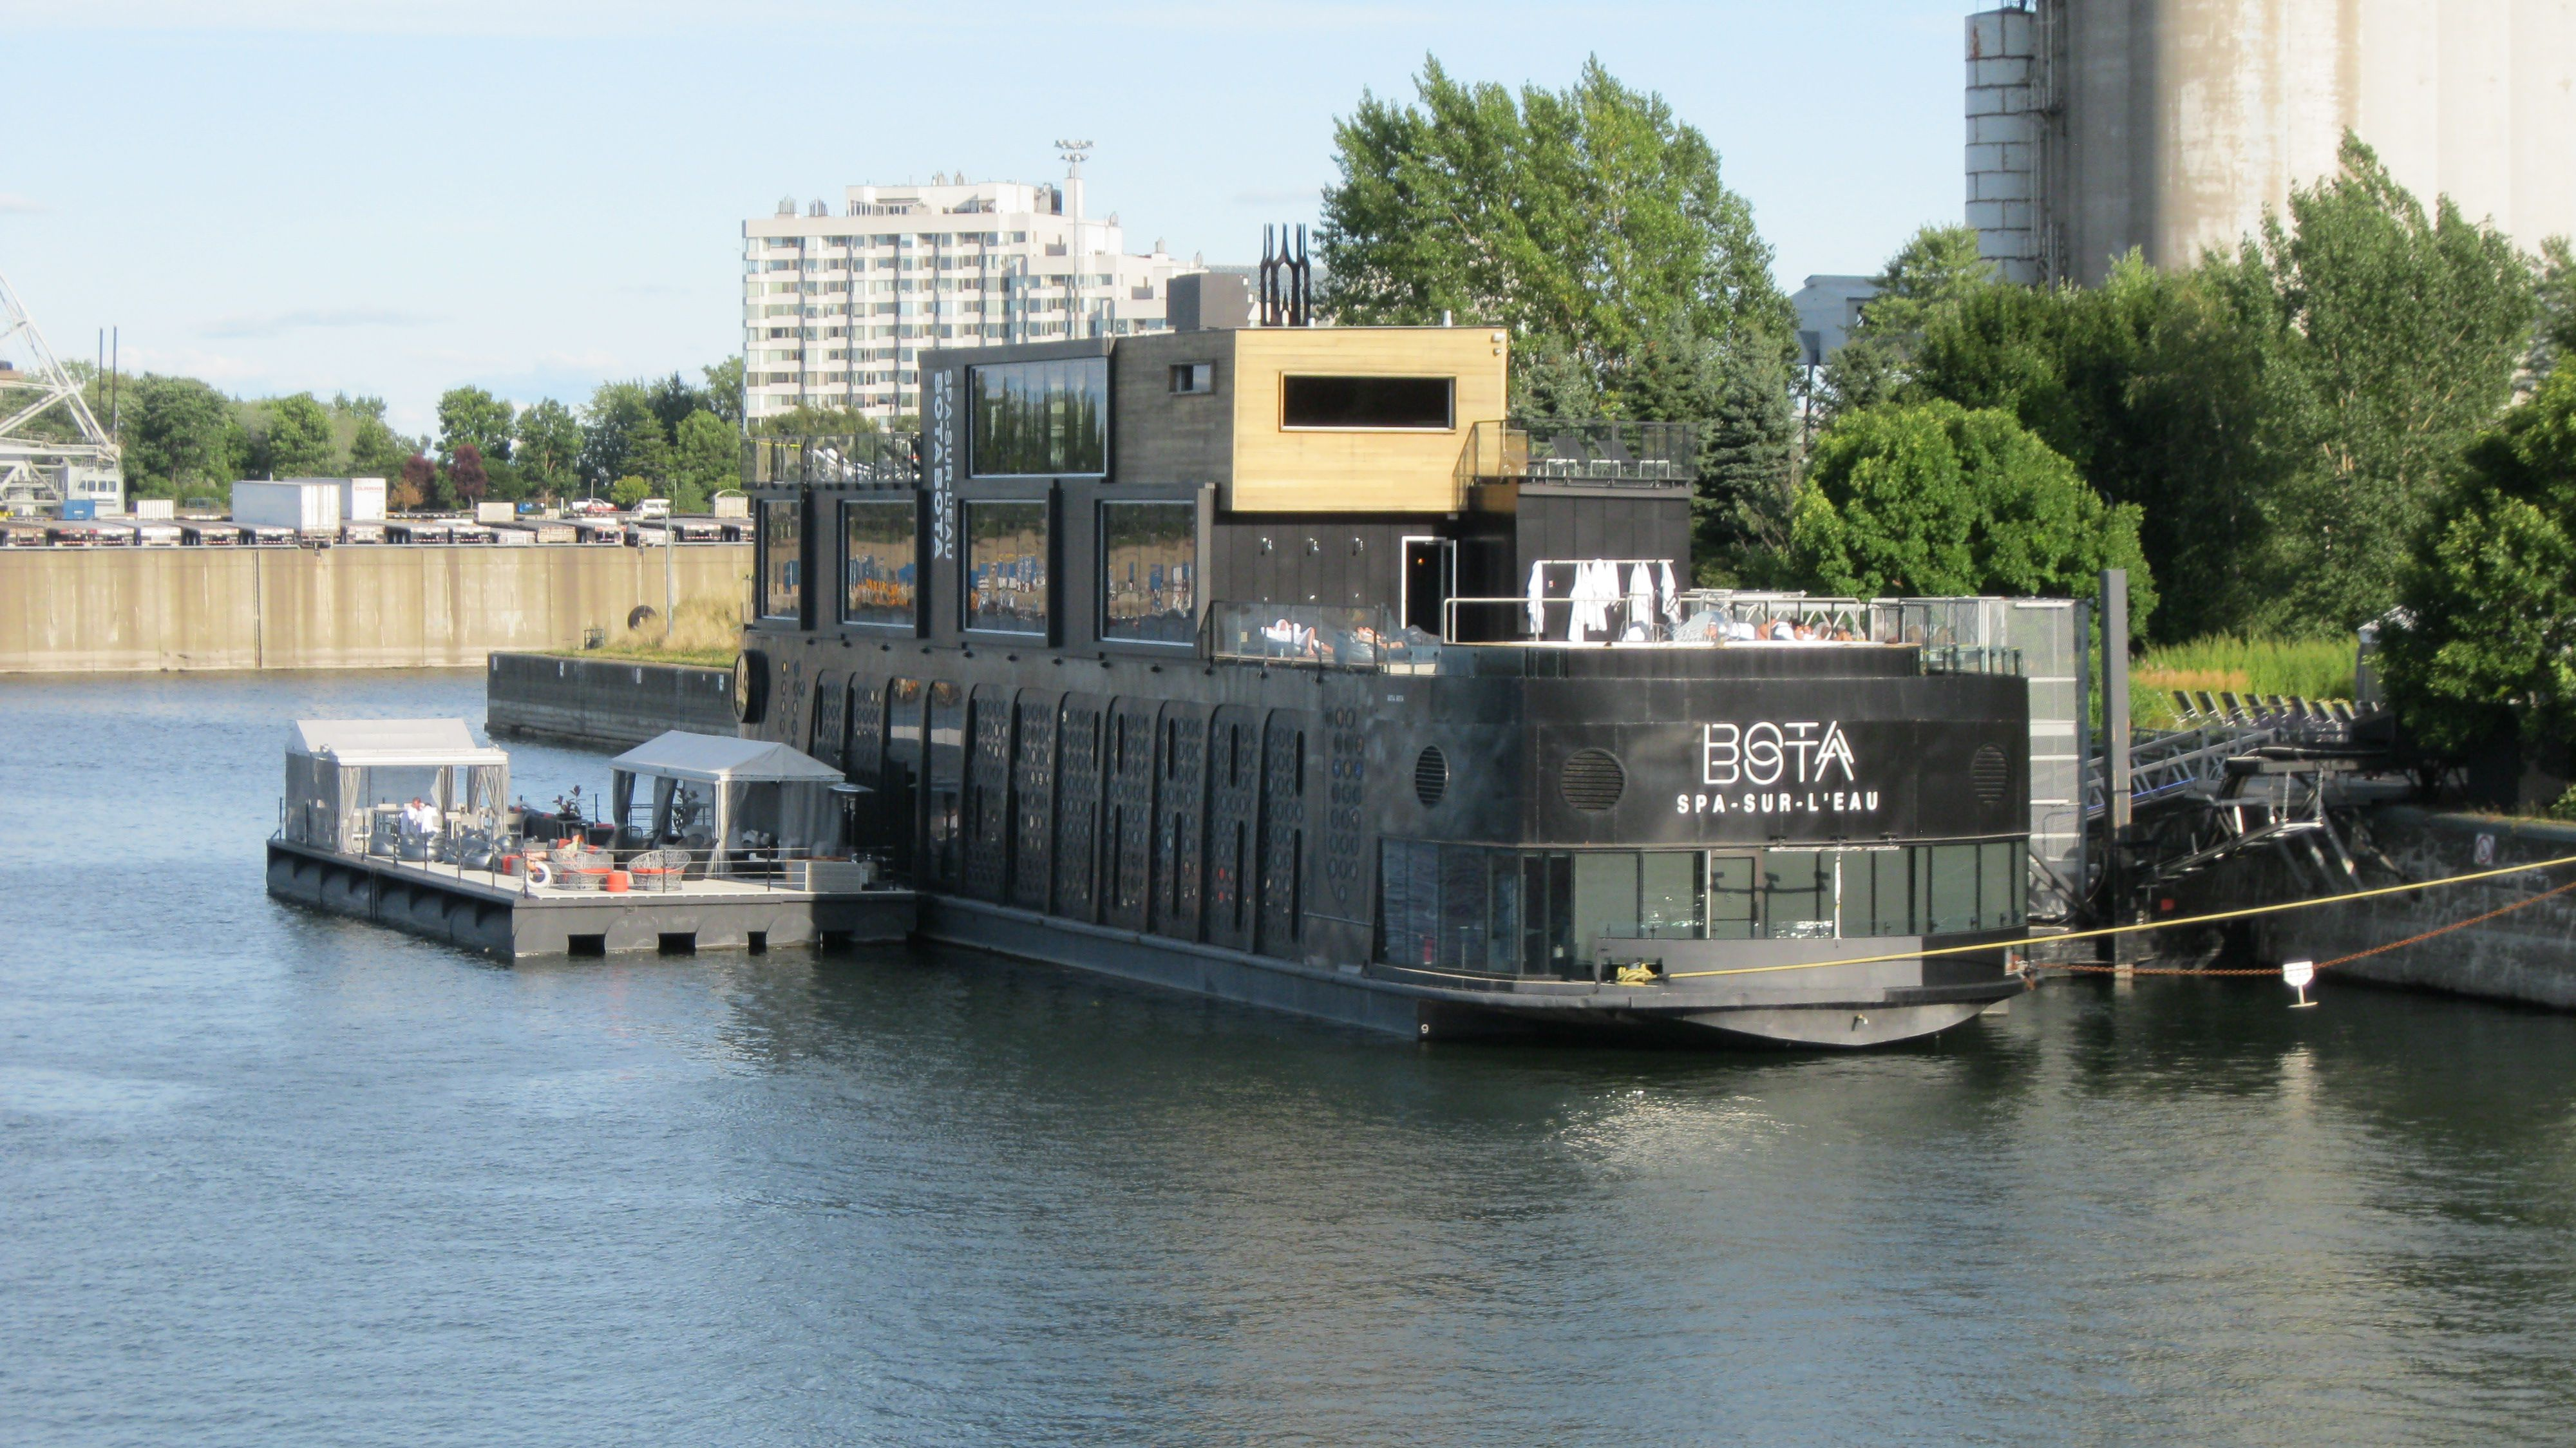 Outdoor view of Bota Bota spa on the water in Montreal